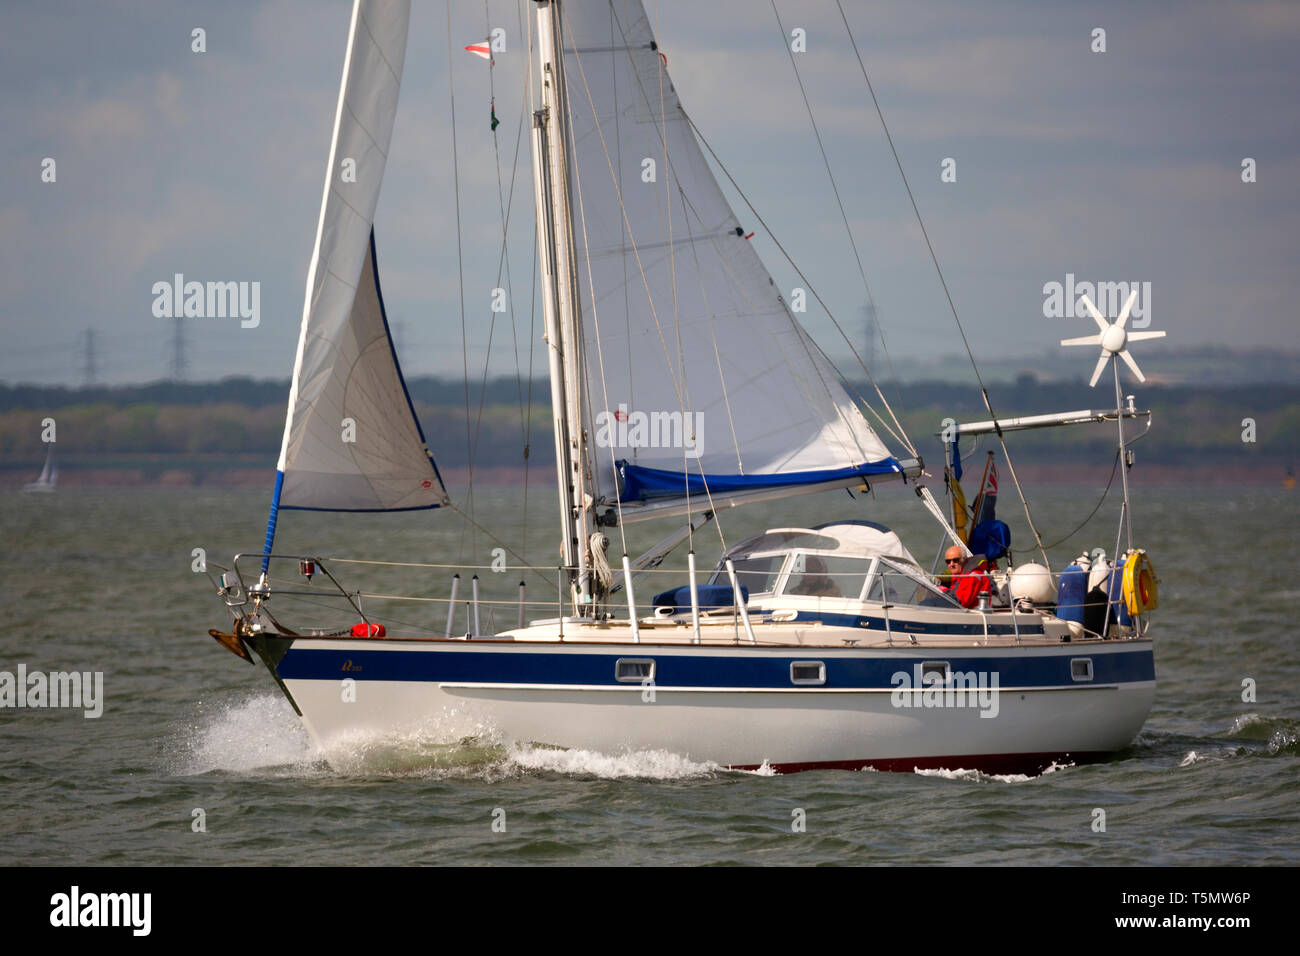 Hallberg-Rassy 352, Yacht, cruising,cruiser,sailing,yachting,retired,couple,roller,reefing,jib, mainsail,sail,long,distance,voyage,holiday,The Solent, - Stock Image